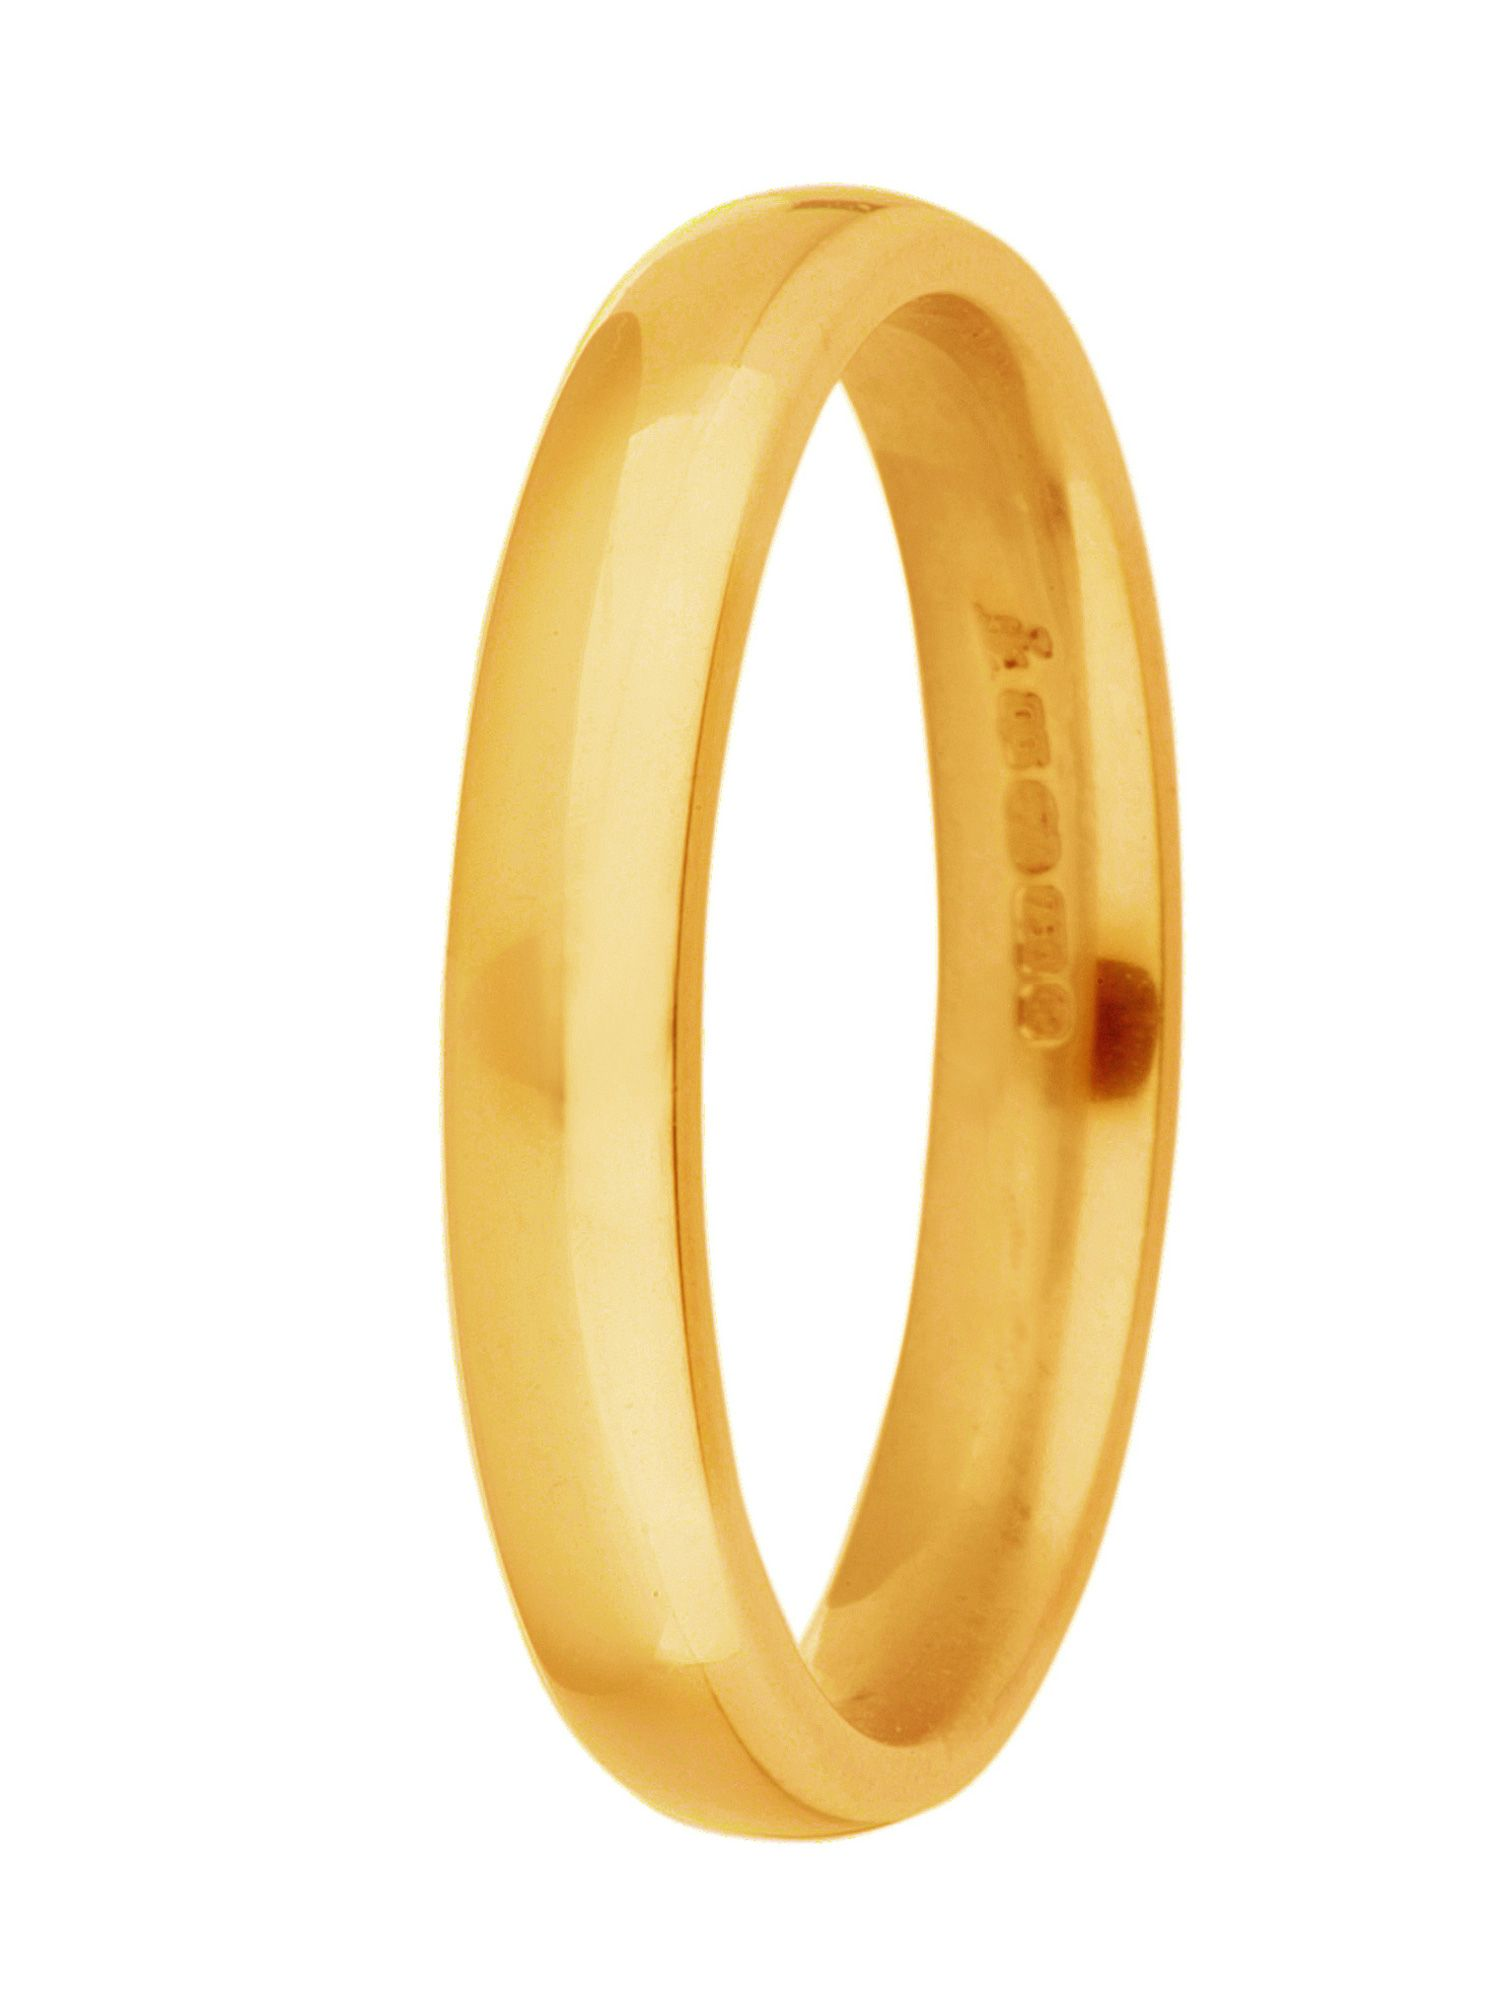 Grooms 18ct gold 5mm court wedding ring - Gold